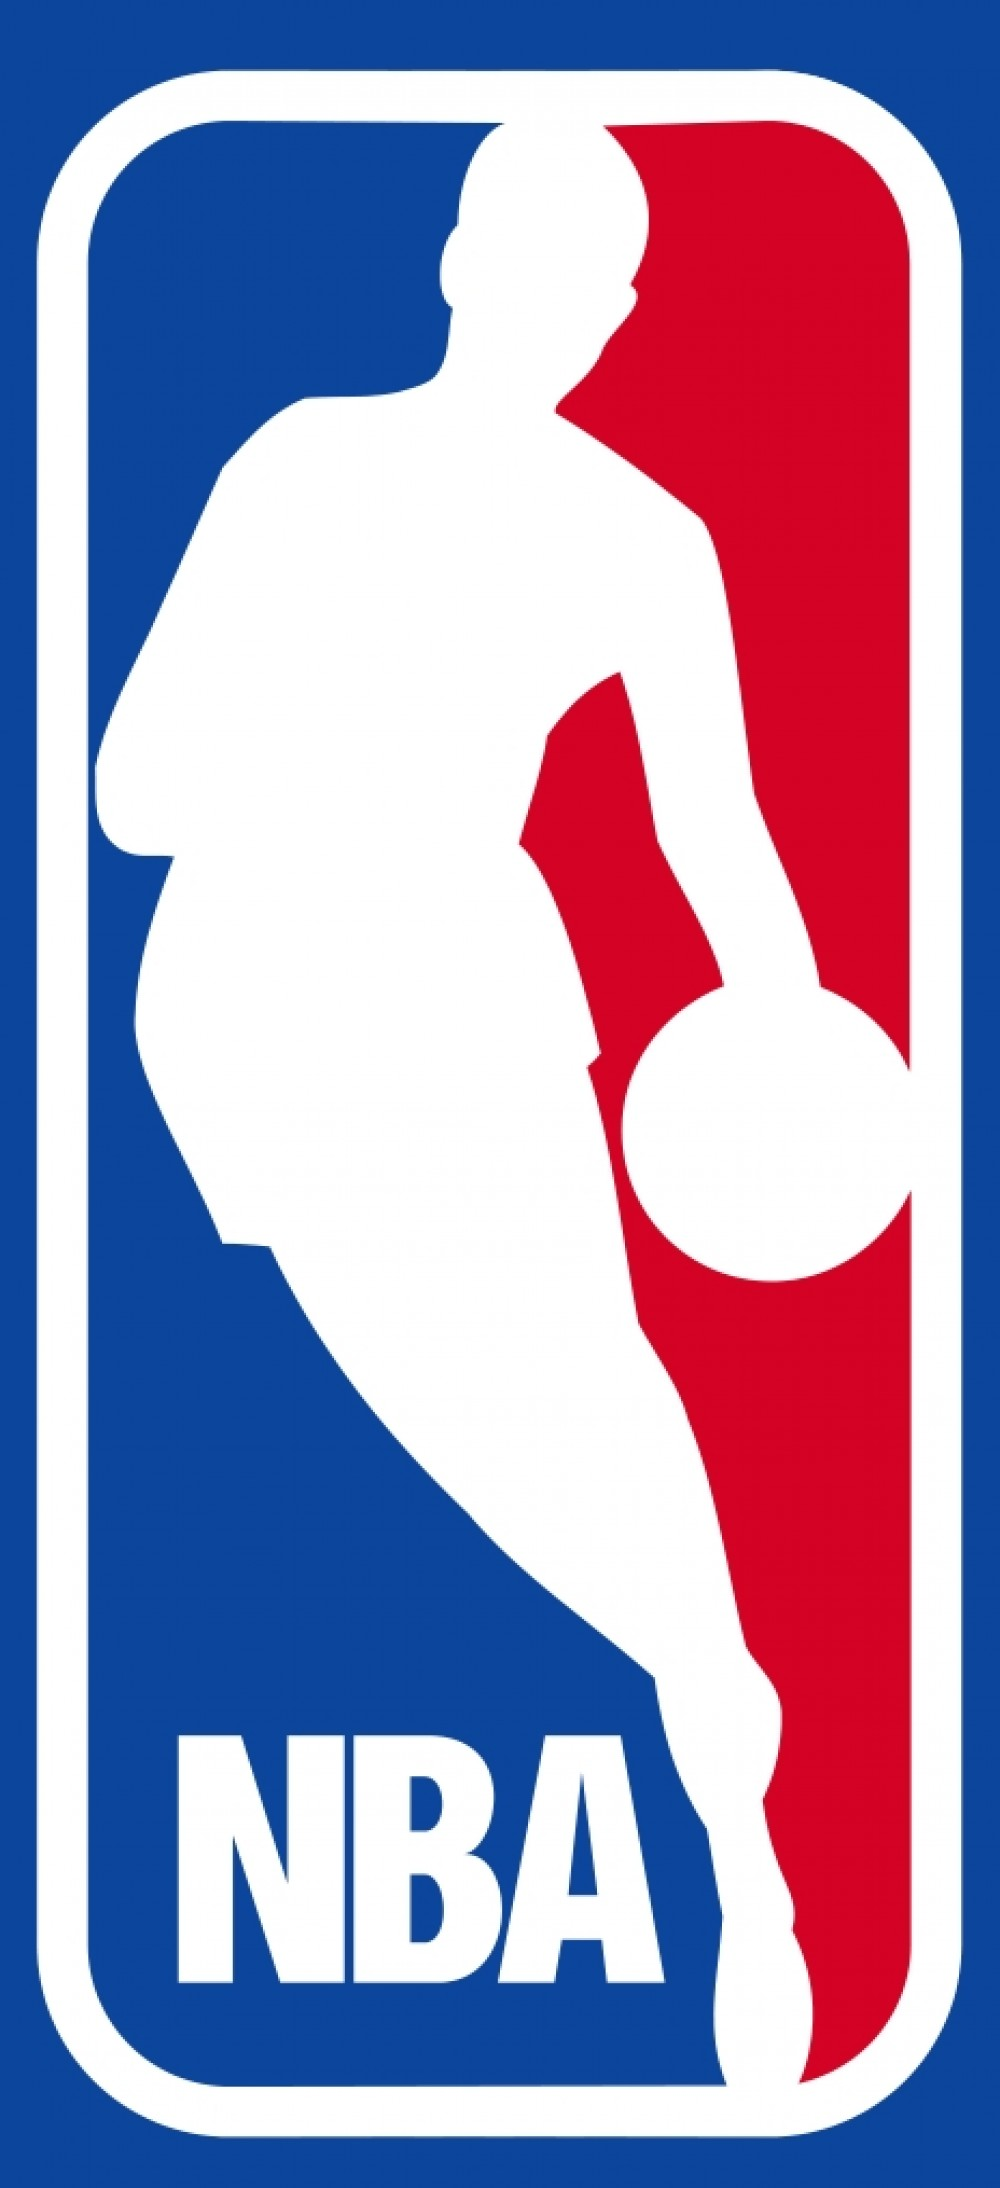 cropped-nba_logo2.jpeg